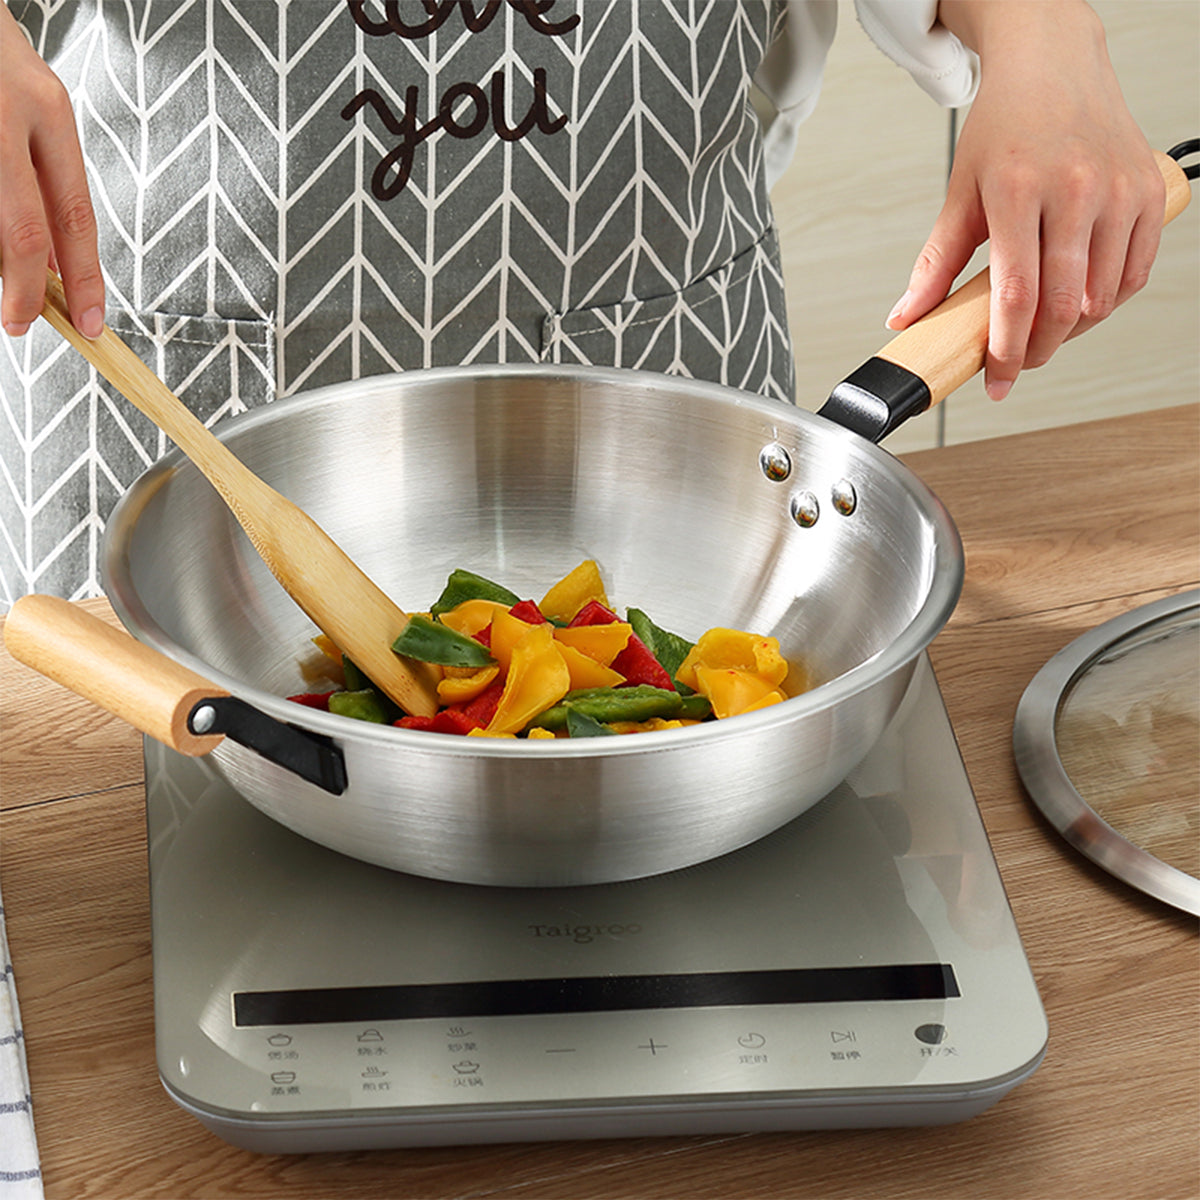 JBL 32cm Stainless steel wok with wood handle